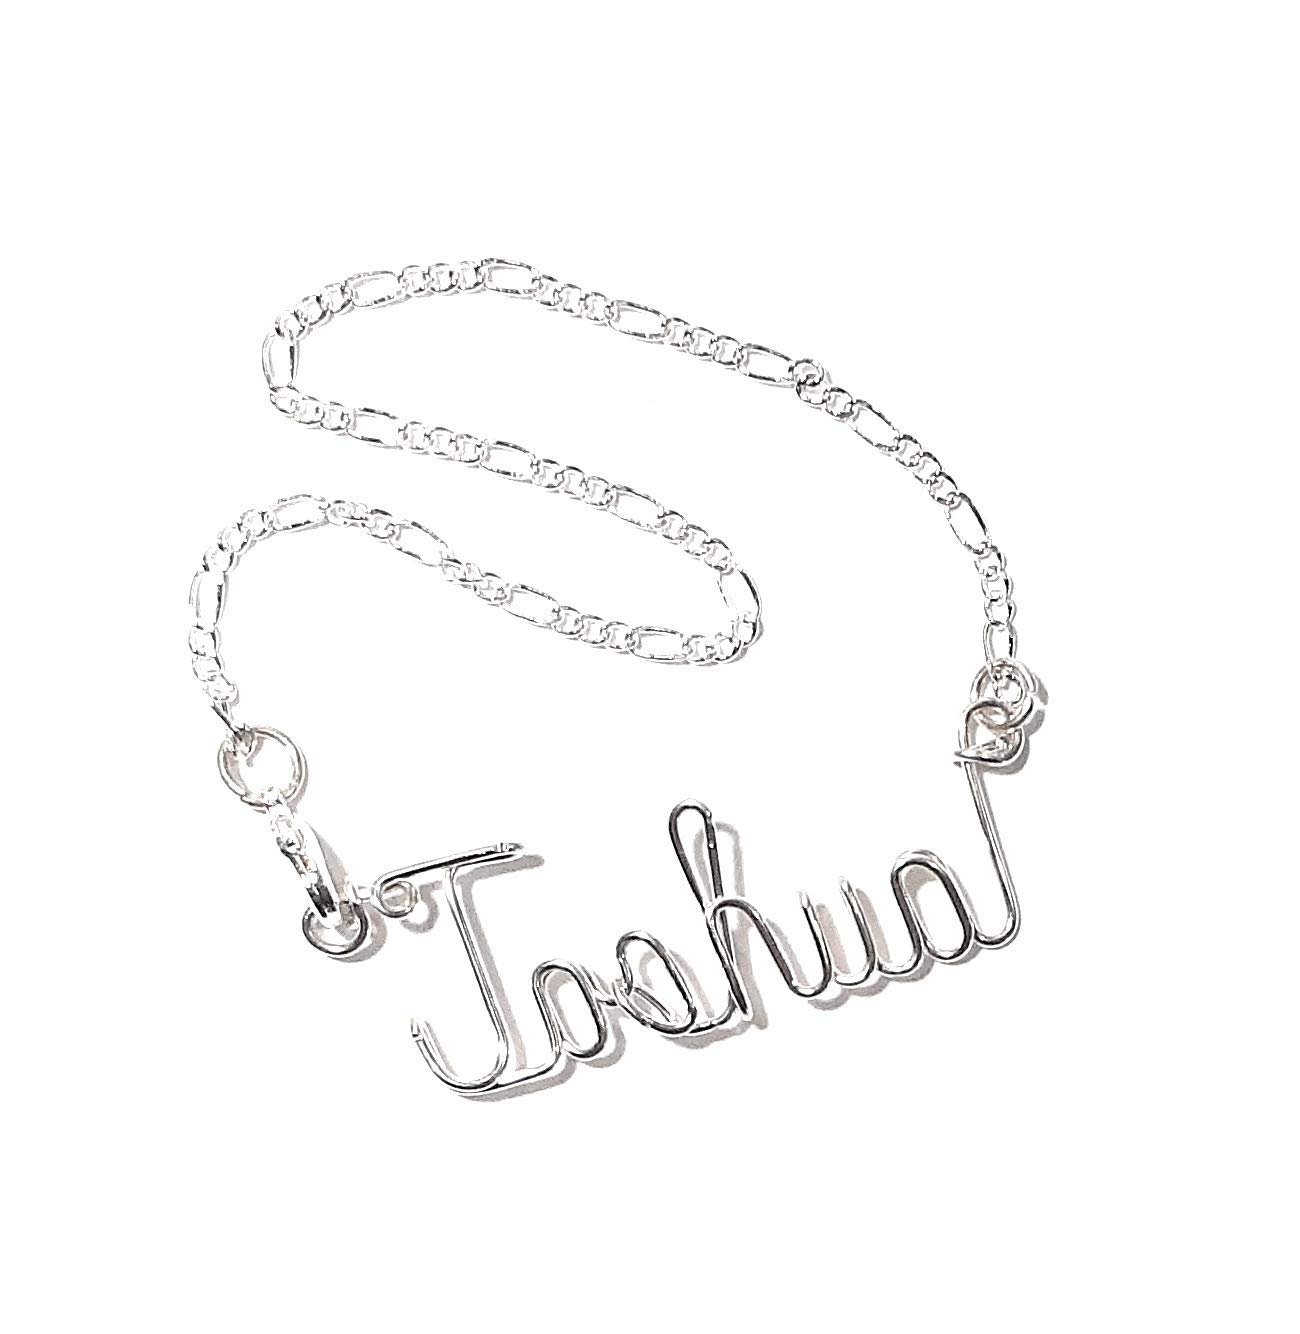 5.2 long Sterling silver handmade amazing silver ankle bracelet baby anklet noisy sound charm customized anklet personalized gifting ank211